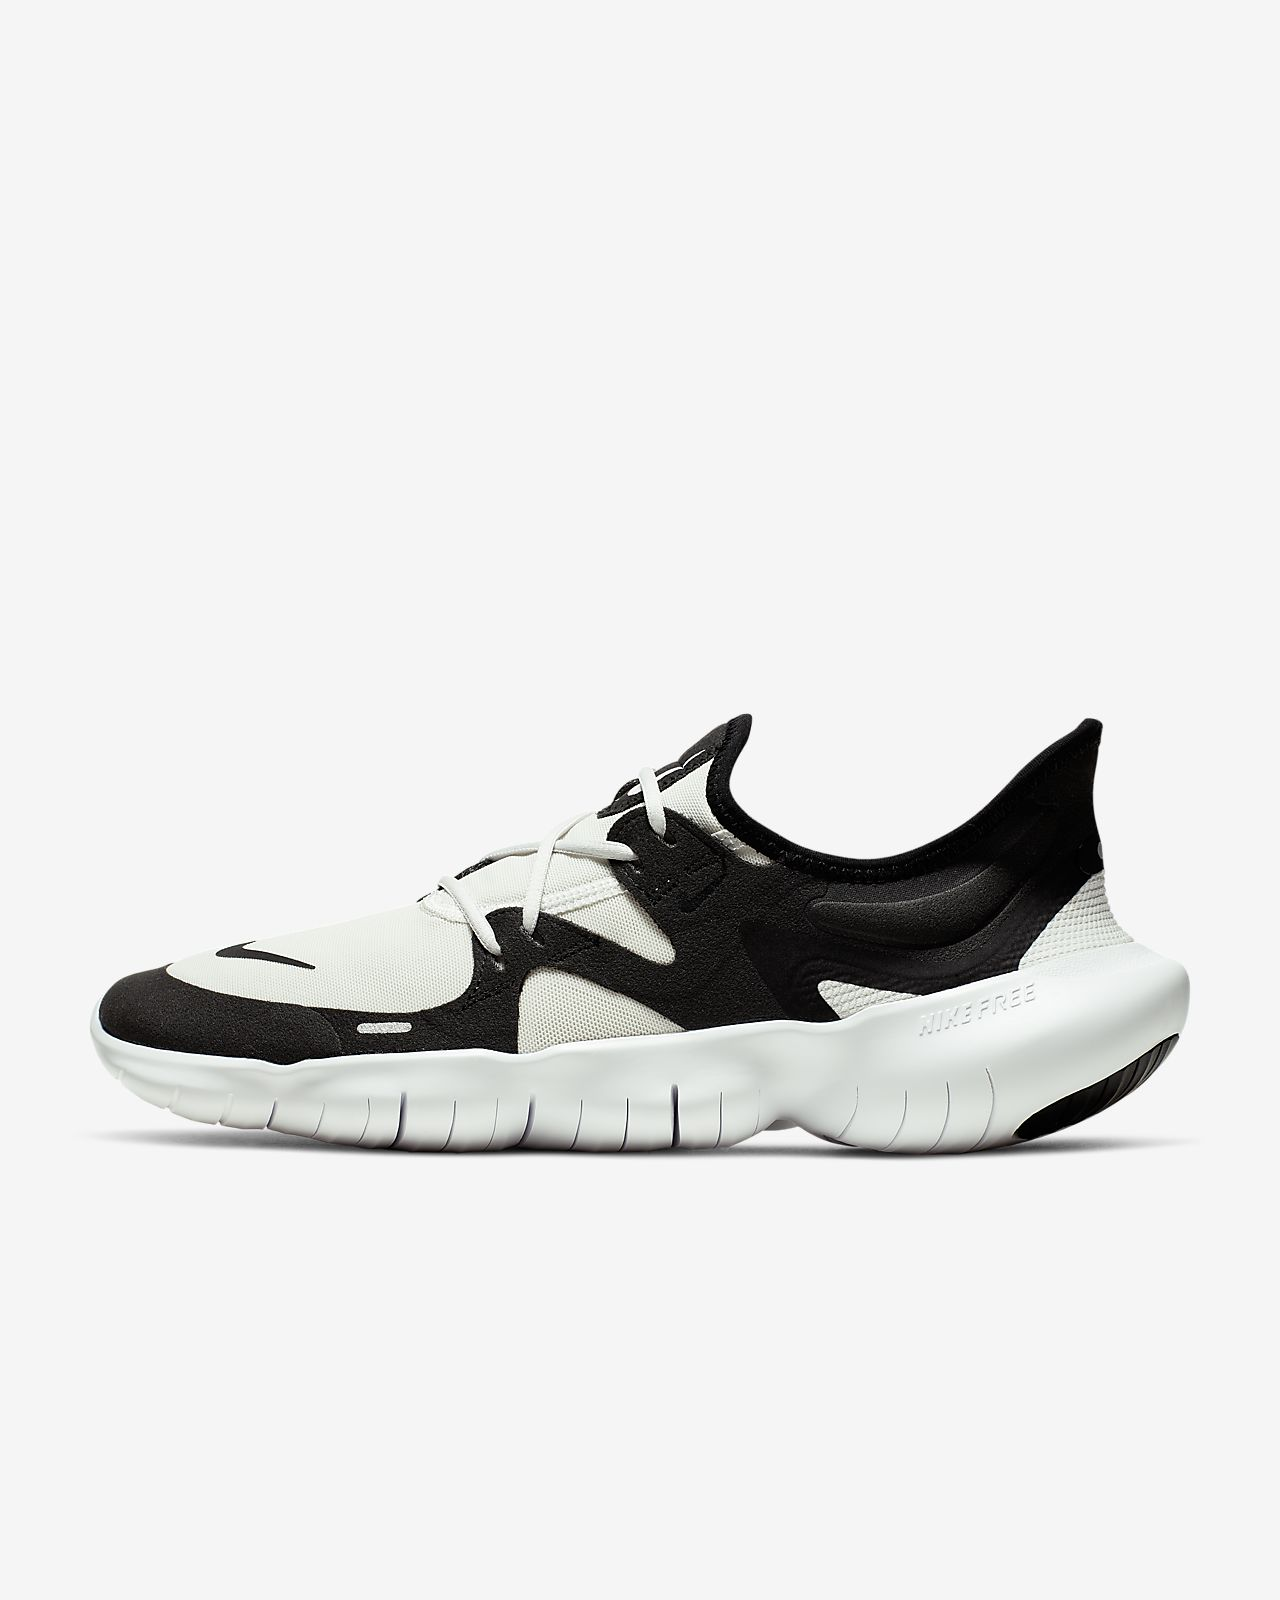 Nike Free Run 5 Rose Nike Free 5.0 Noire Homme Chaussures